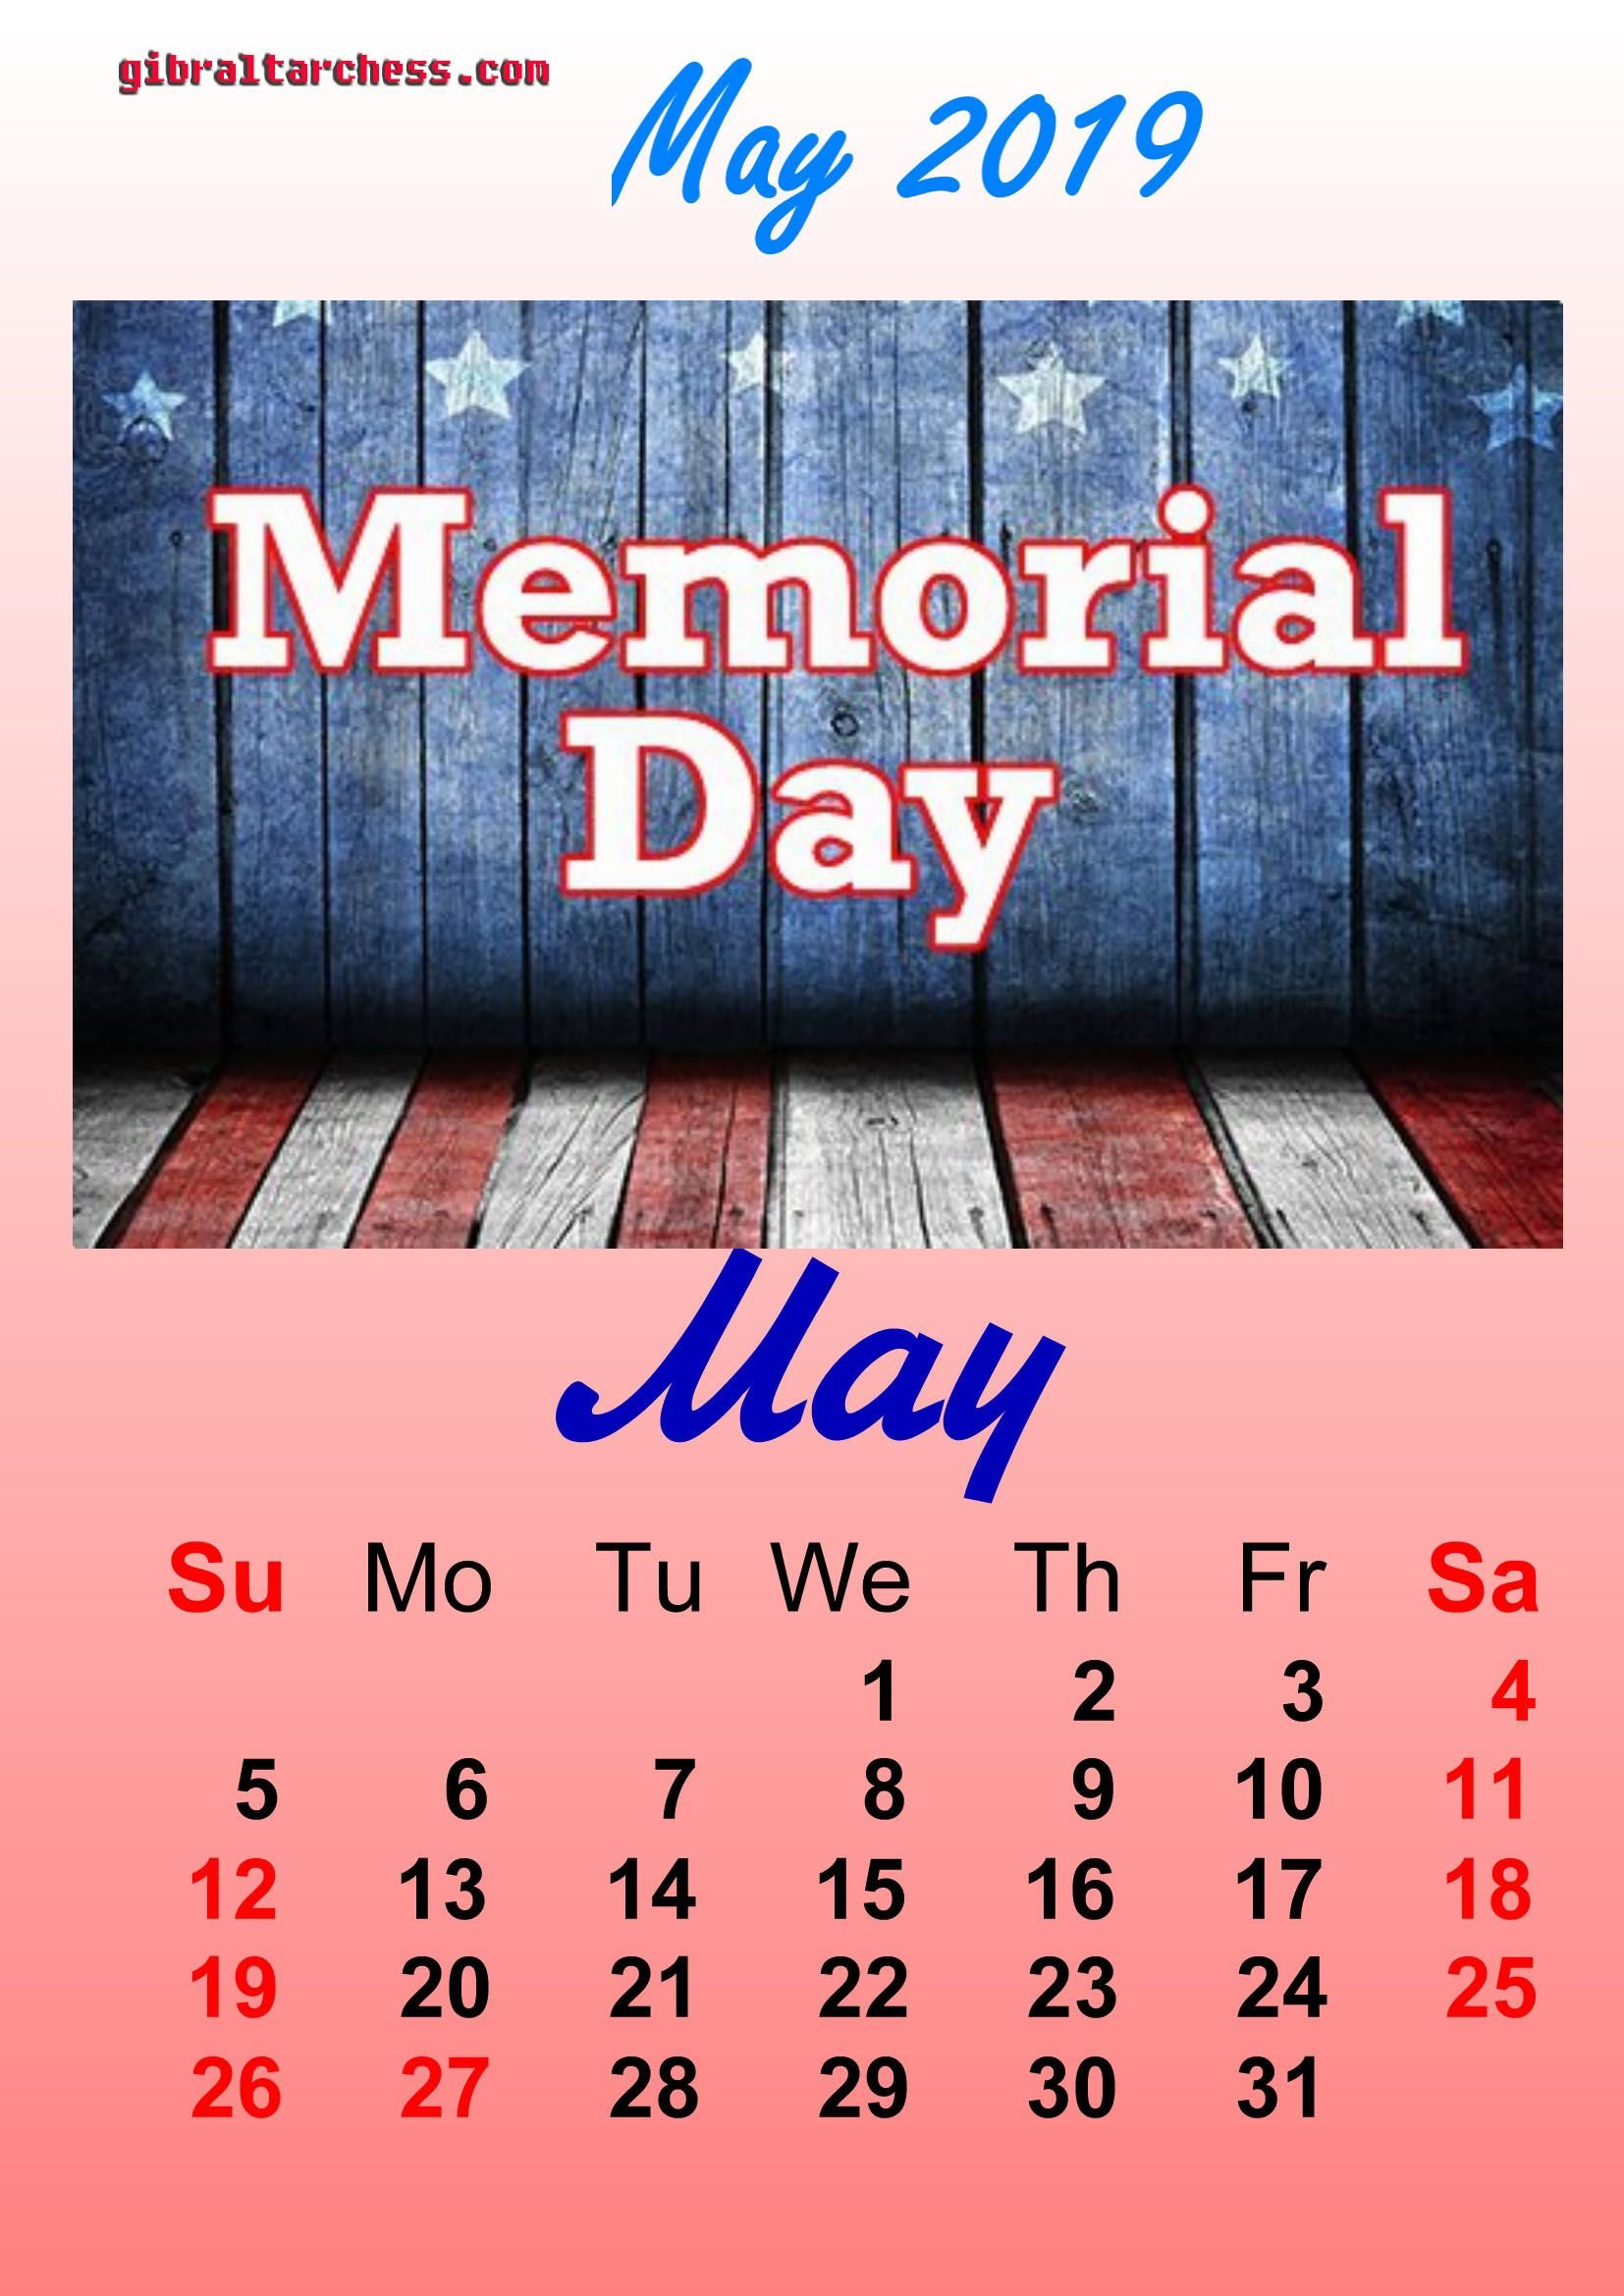 1 May 2019 Holidays Calendar Memorial Day | Calendar Template Calendar 2019 Memorial Day